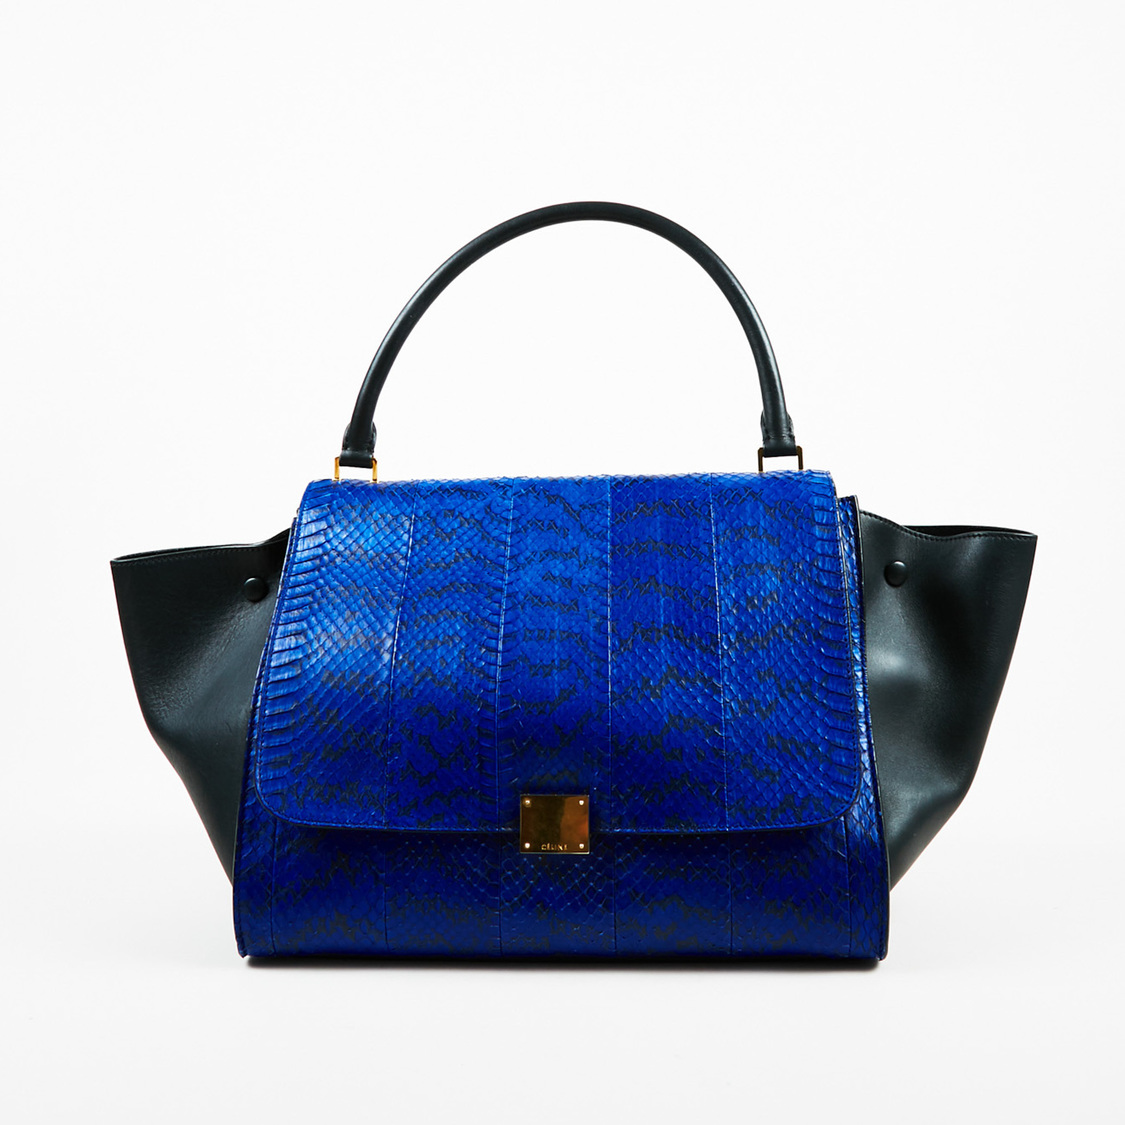 Details about Celine Blue   Black Python Suede   Leather Top Handle Large